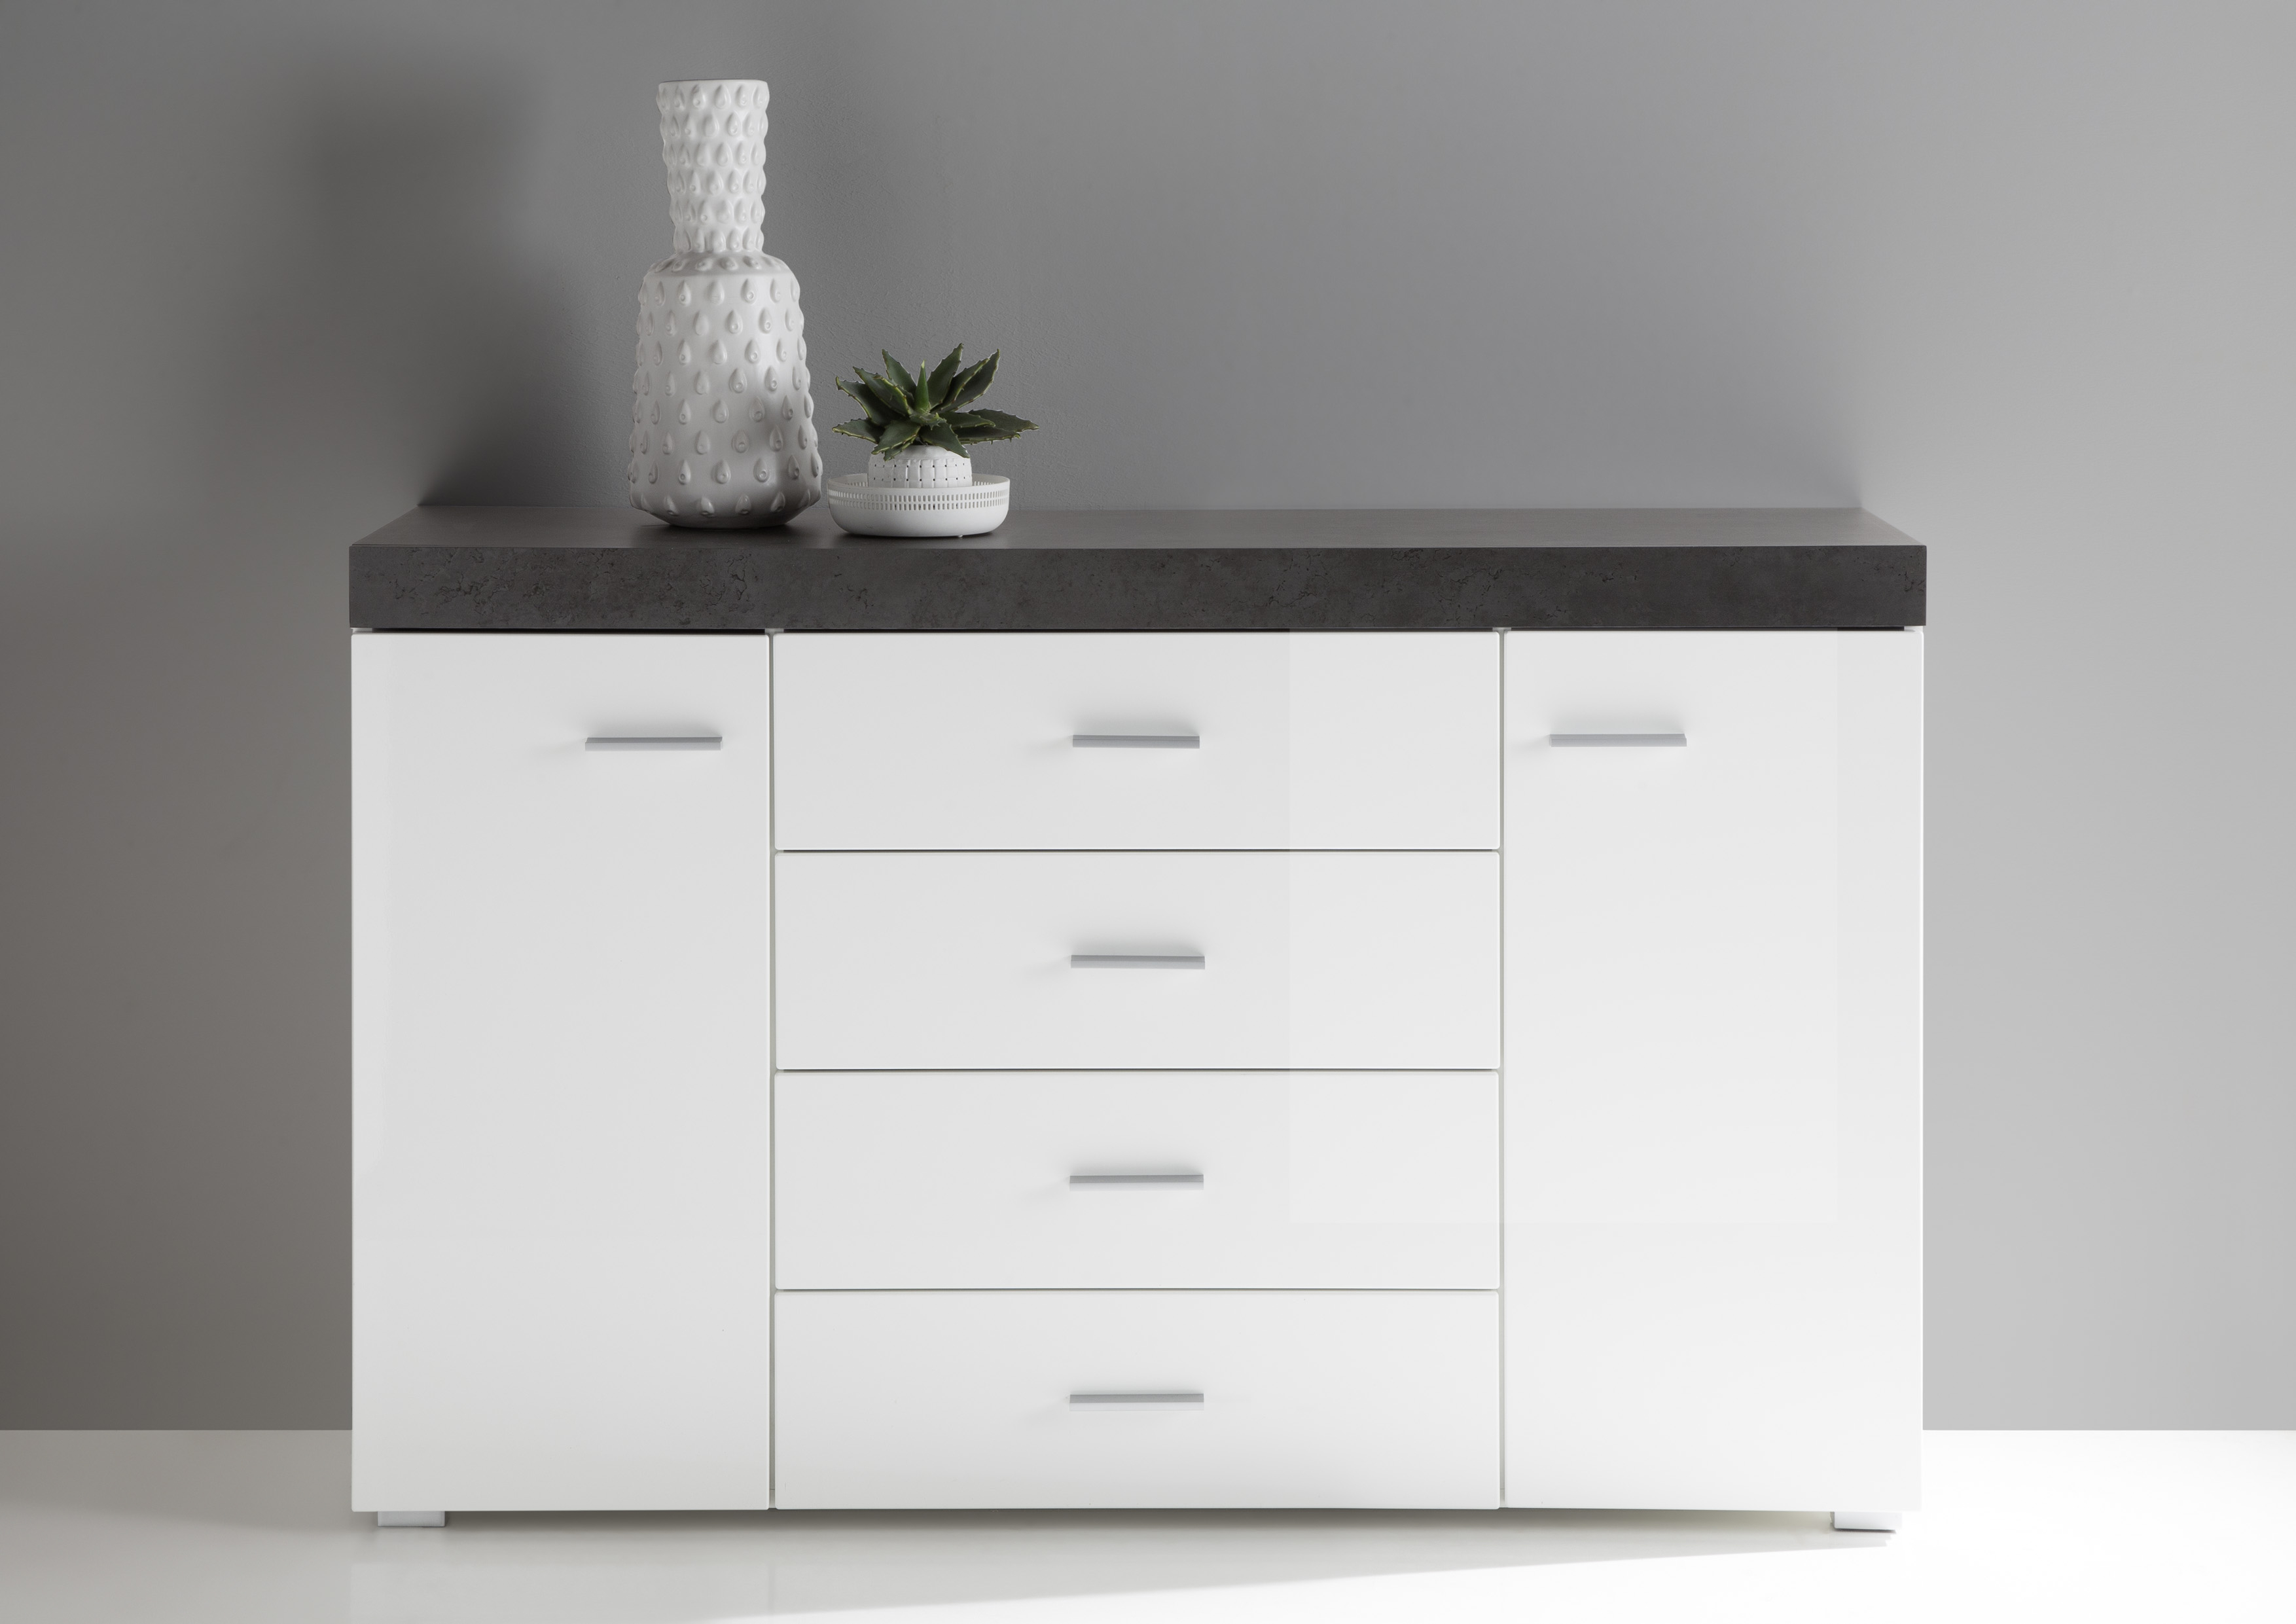 """Sideboard """"kendall Chic"""", Kommode, Wohnzimmerkommode, 136 X 86 X 40 Cm, Weiß/dark Concret Pertaining To 2017 Kendall Sideboards (View 3 of 20)"""